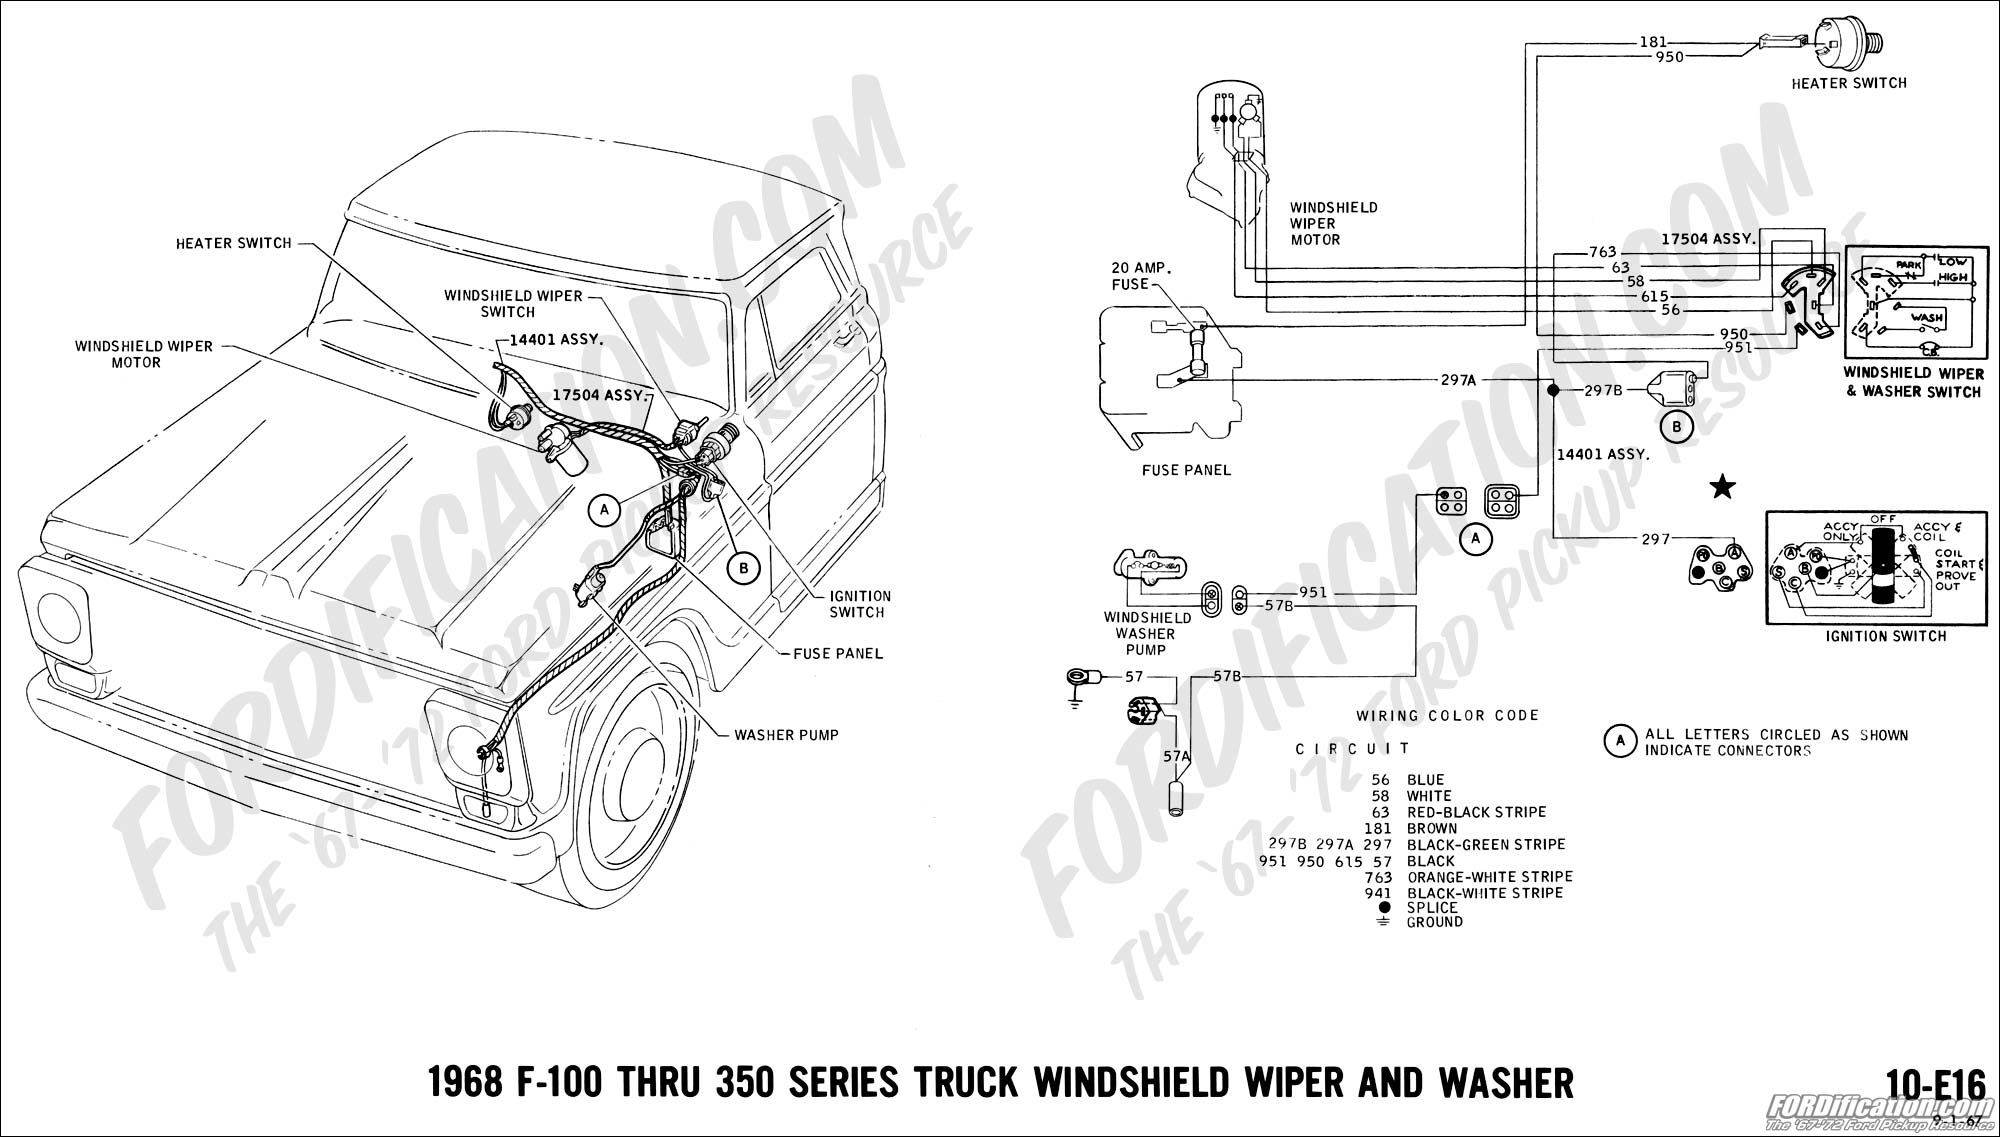 68 18 1968 camaro fuse block wiring schematic wiring diagram simonand 1967 chevy impala wiring diagram at webbmarketing.co